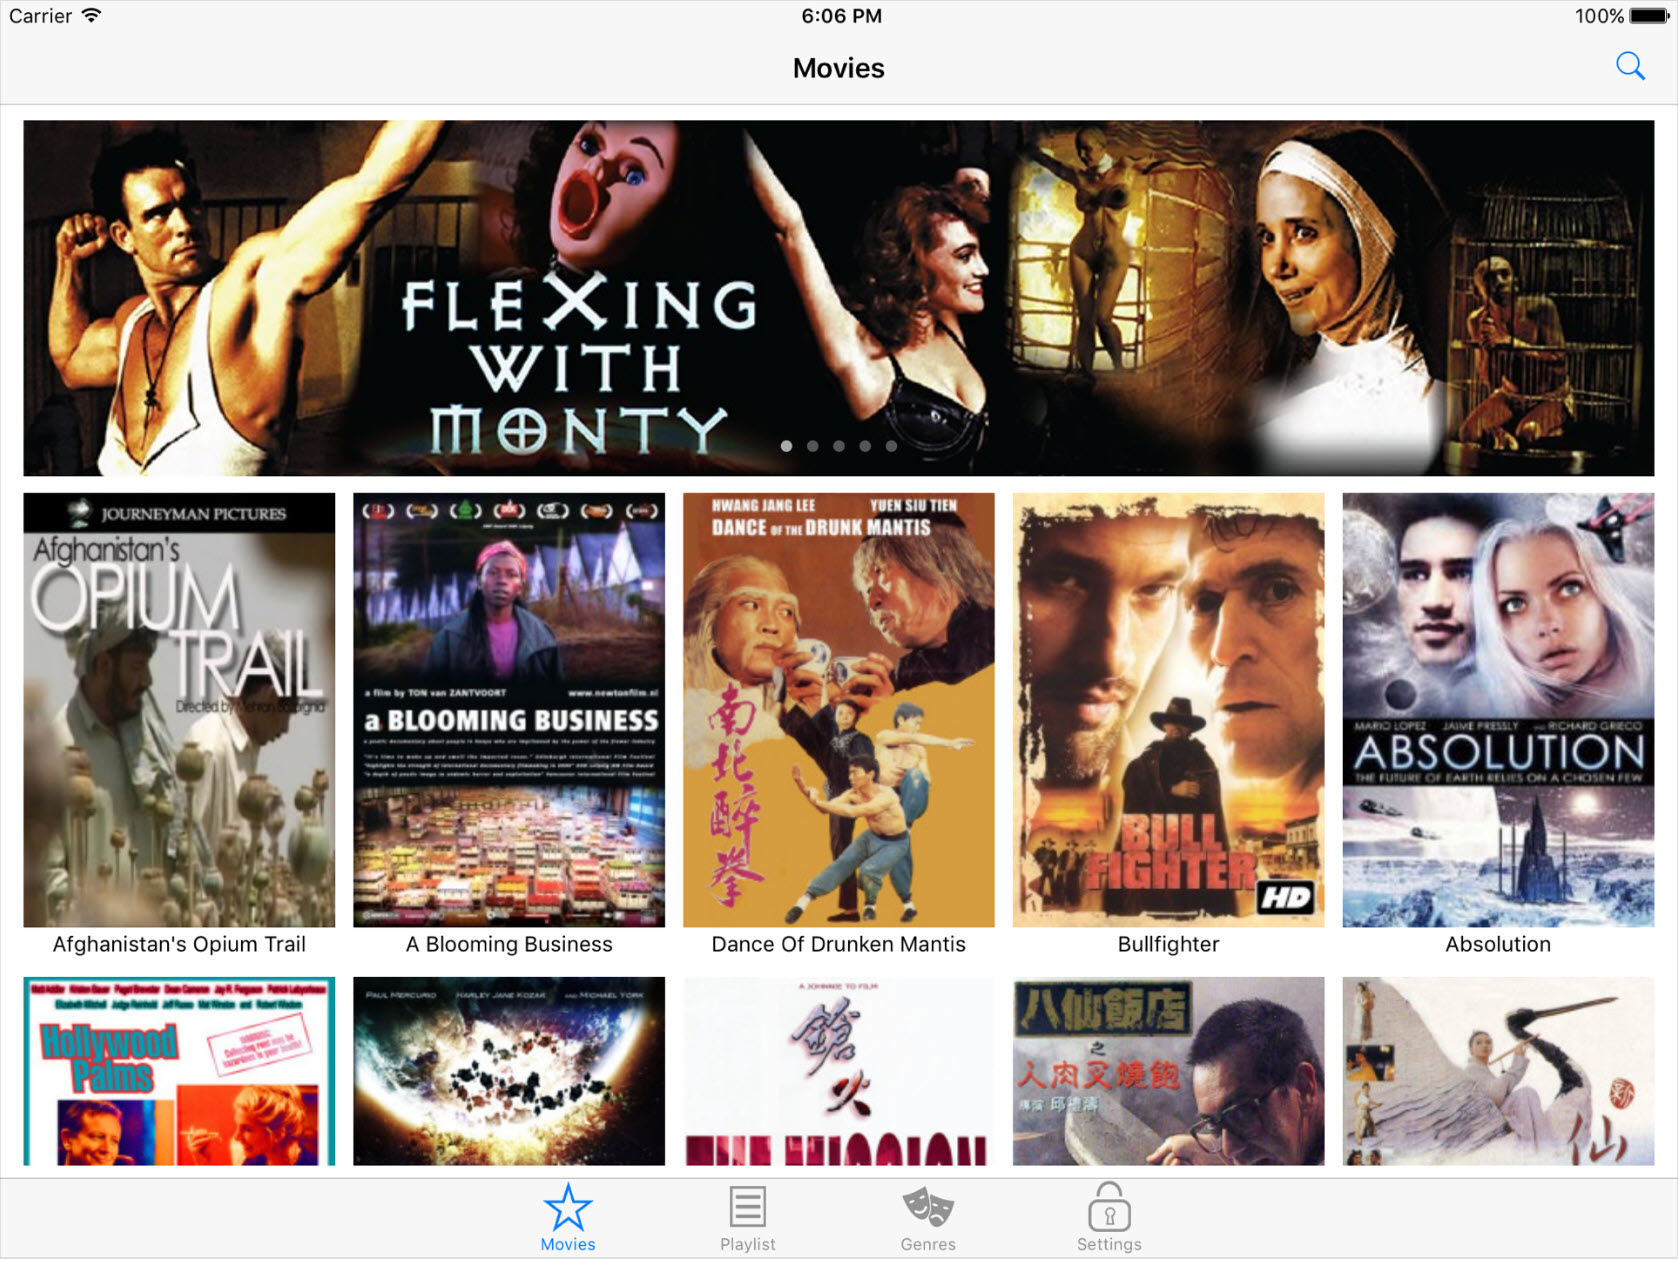 Top 11 free movie apps and websites | Candid.Technology